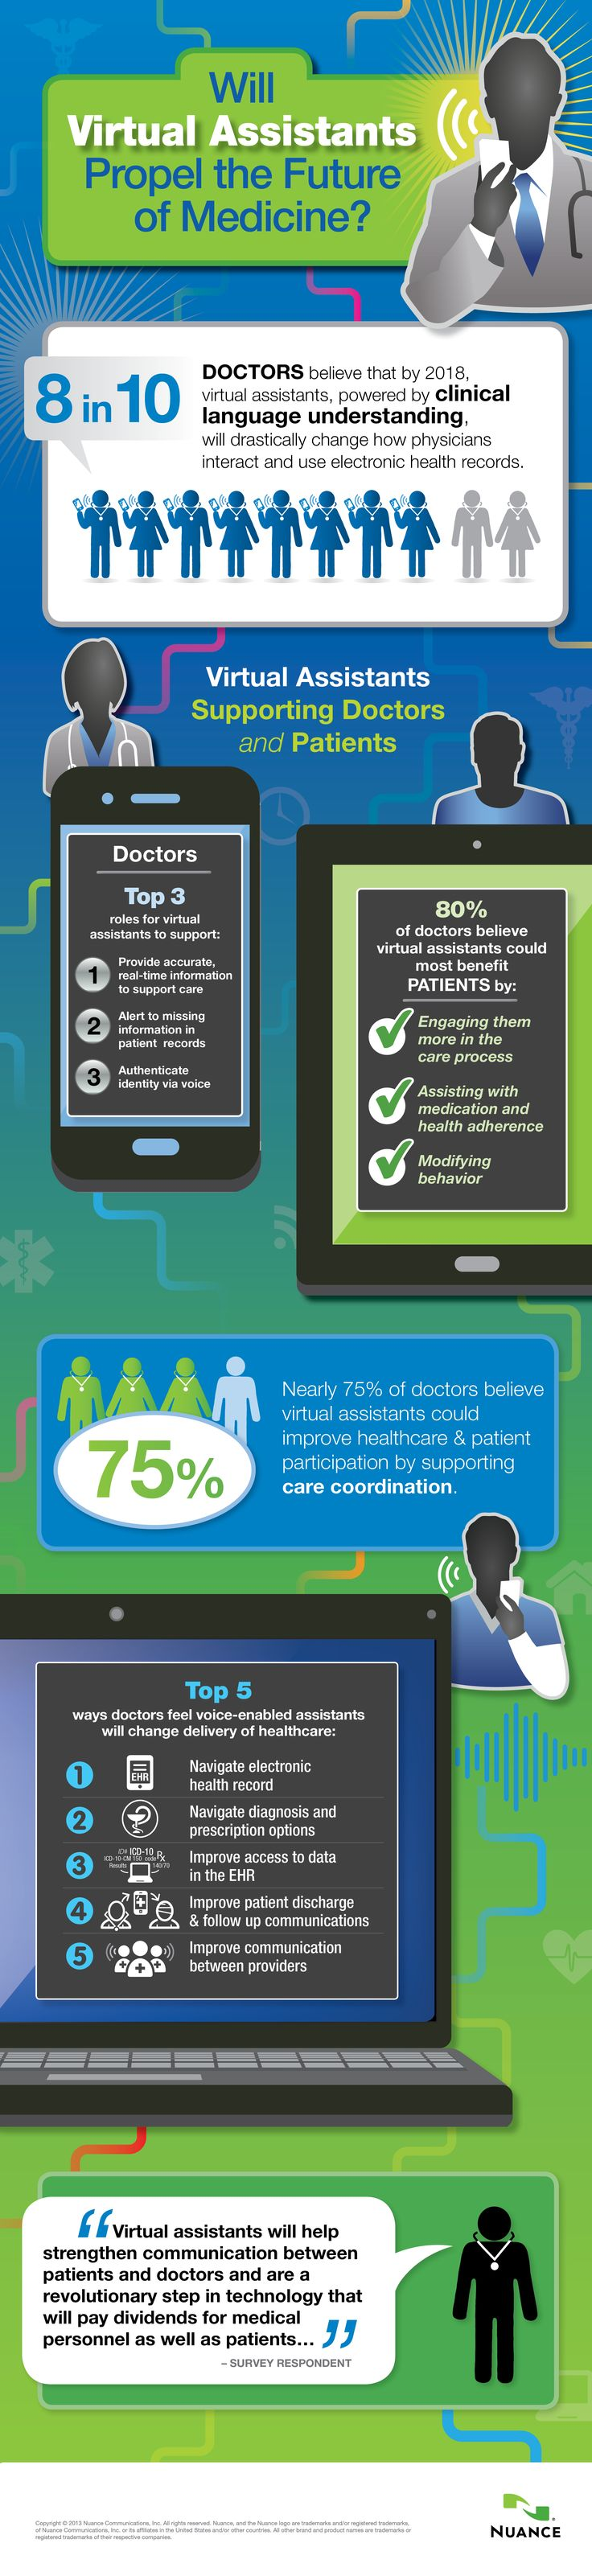 InfoGraphic: Will Virtual Assistants Propel the Future of Medicine?